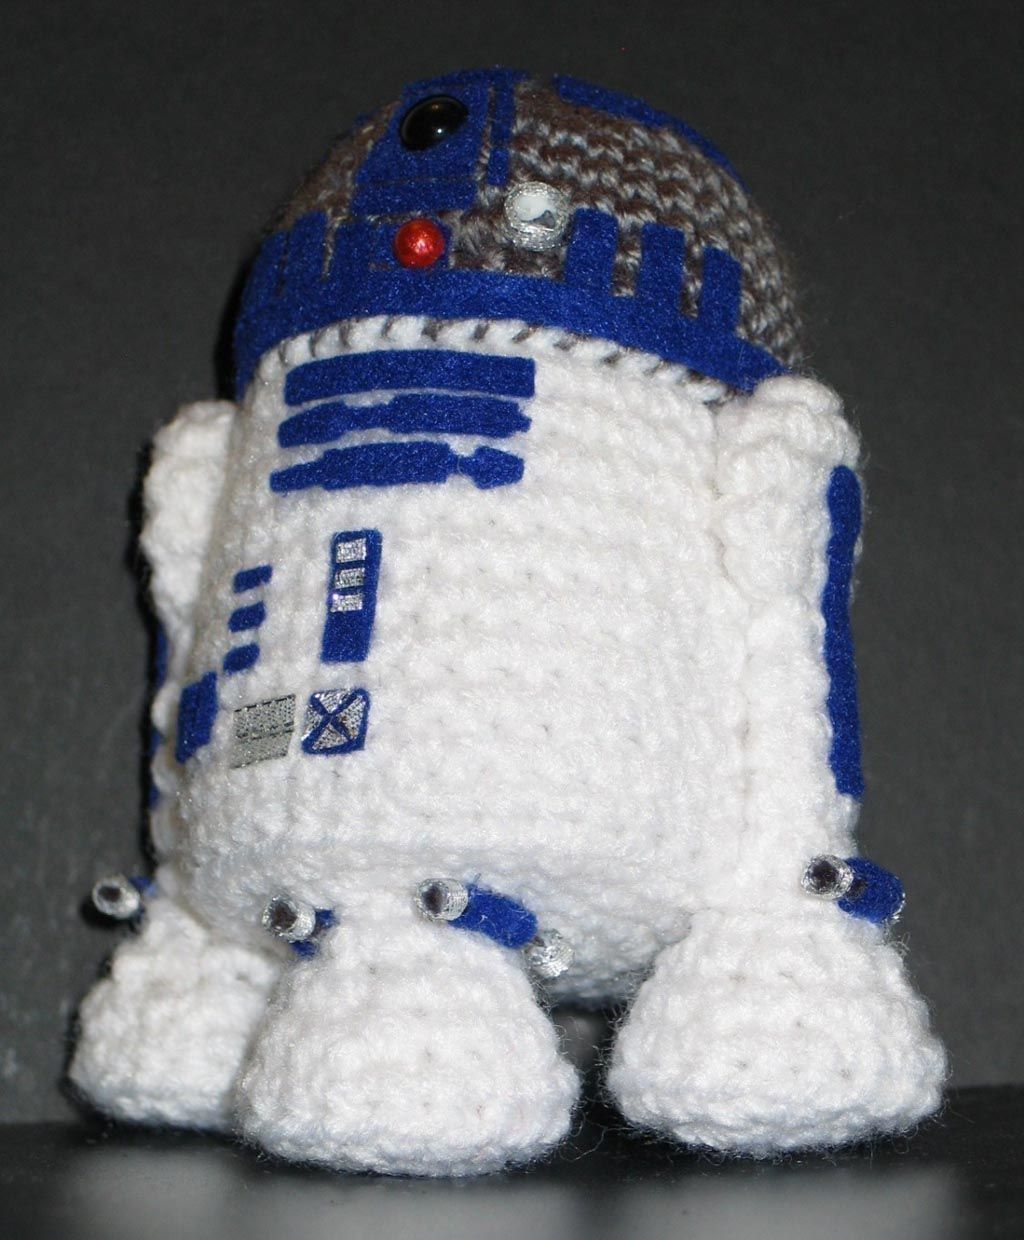 Make Your Own Star Wars R2-D2 Amigurumi | May The Force Be With You ...